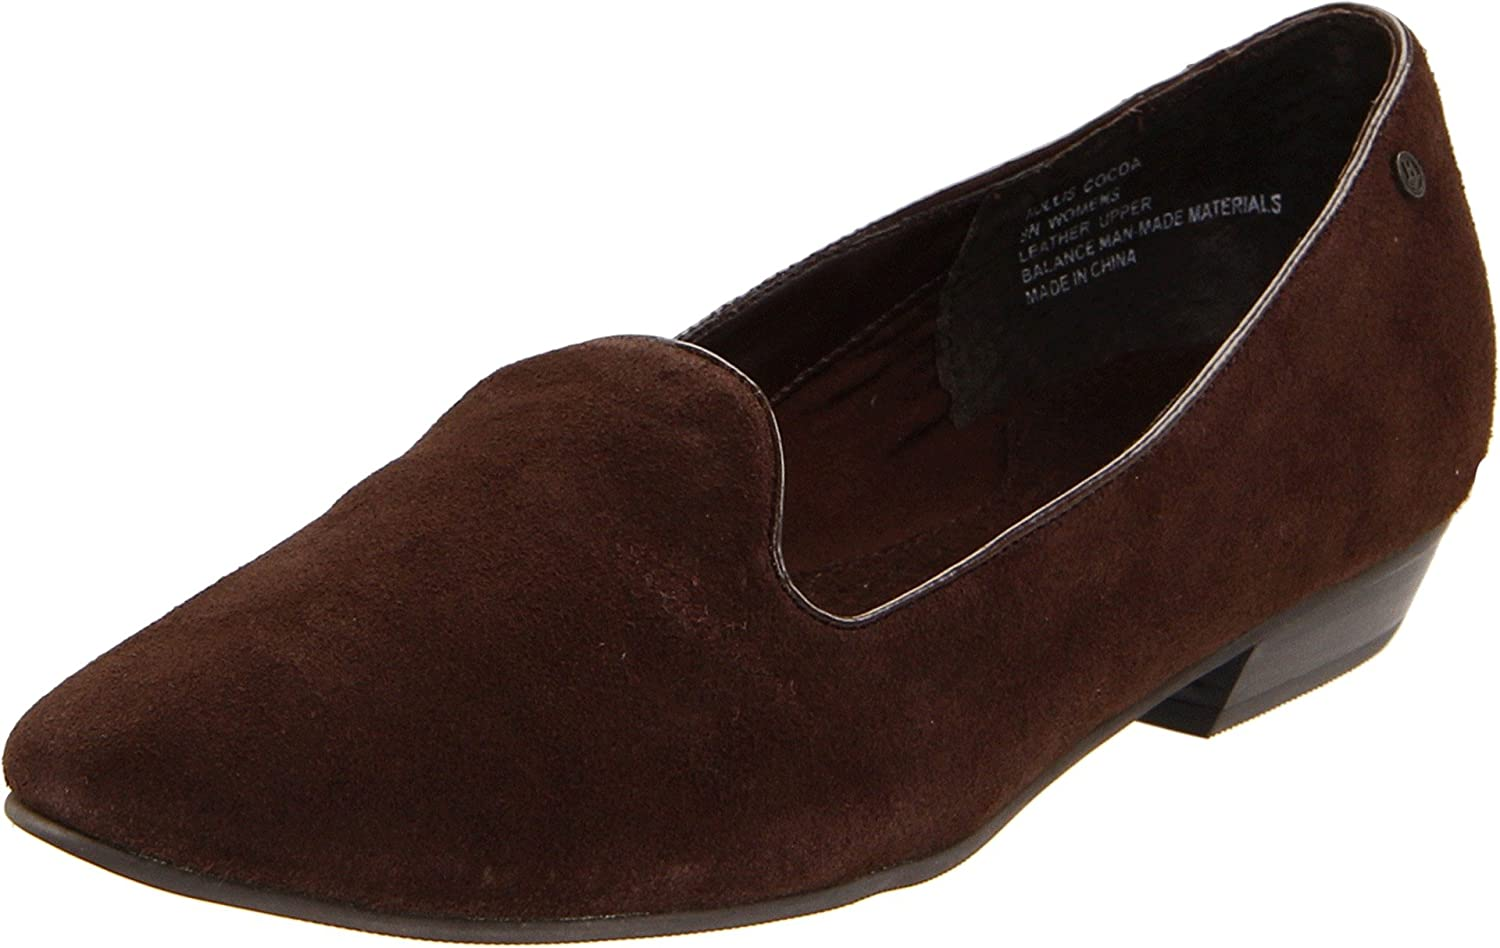 Bass Women's Hollis Flat